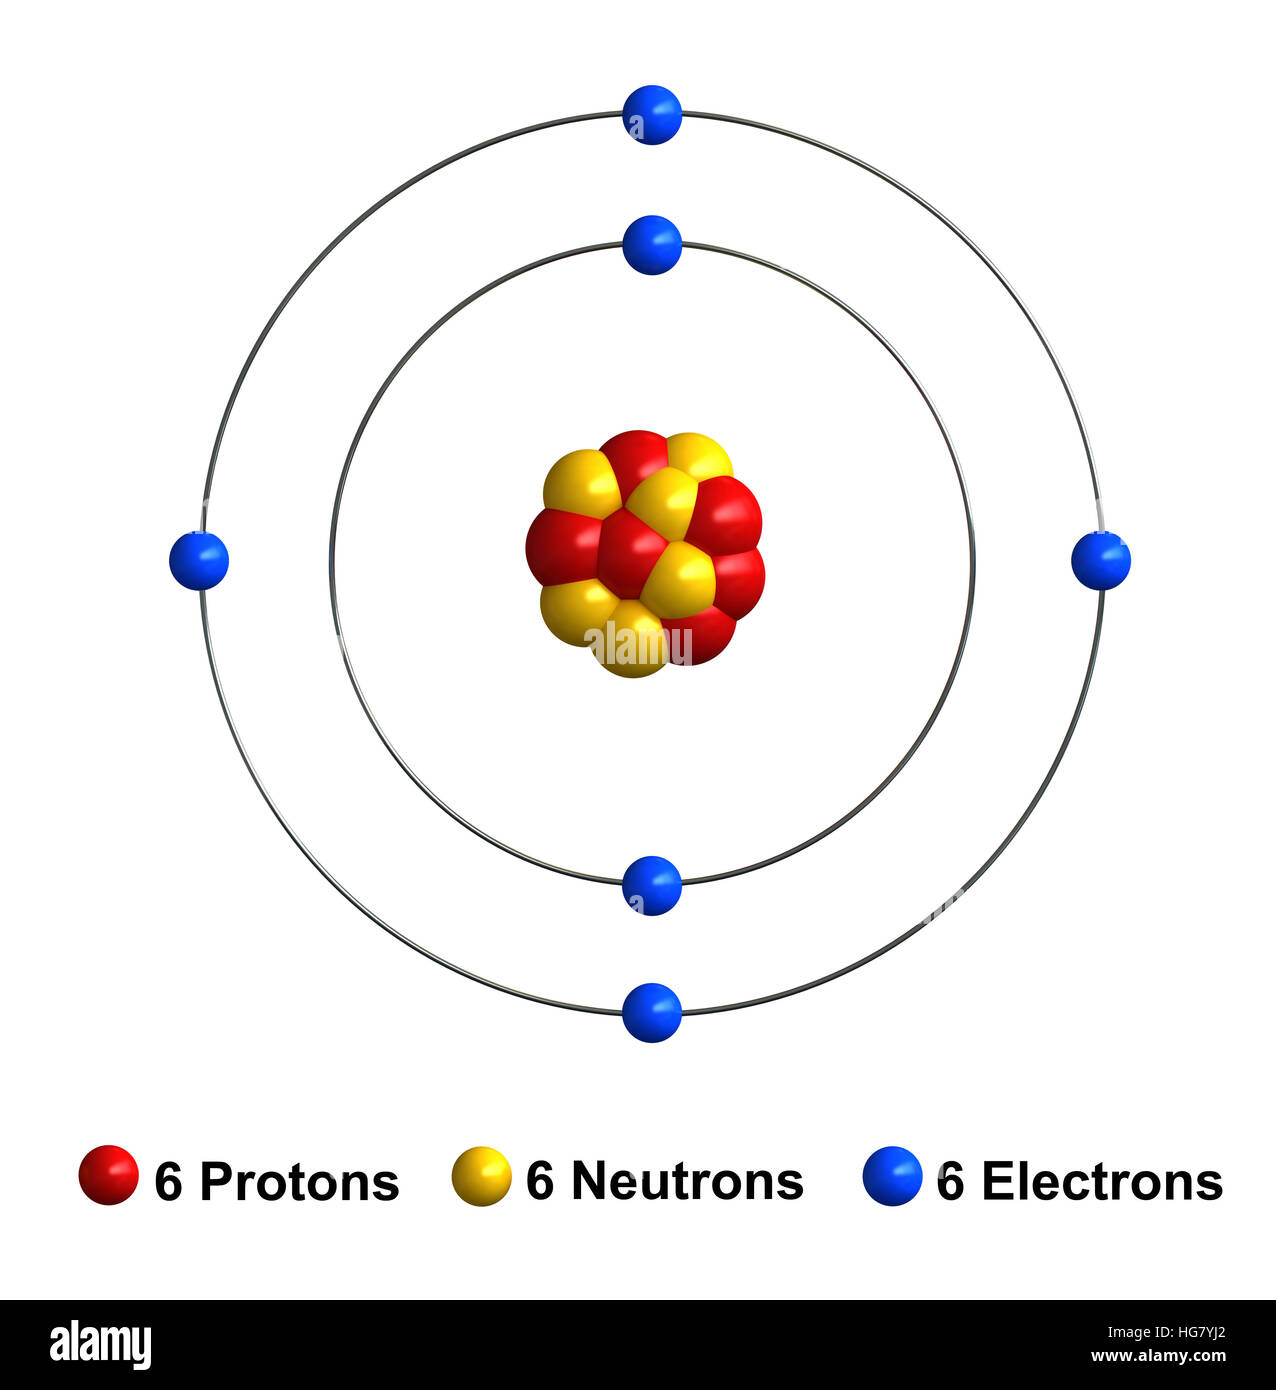 The carbon atom: structure, features and properties 48